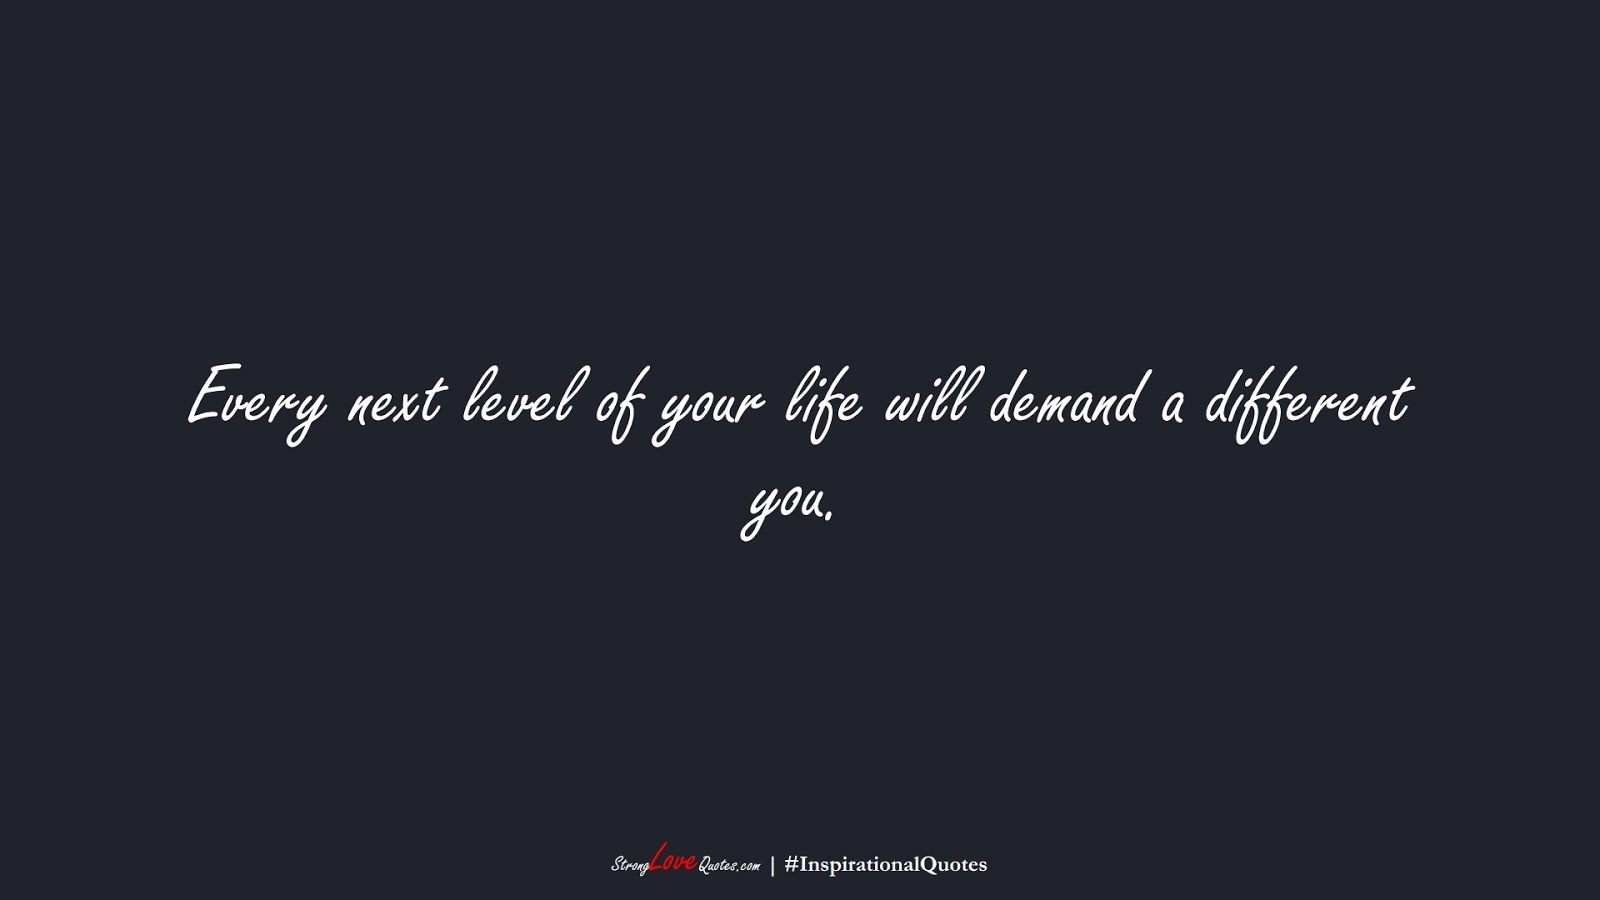 Every next level of your life will demand a different you.FALSE